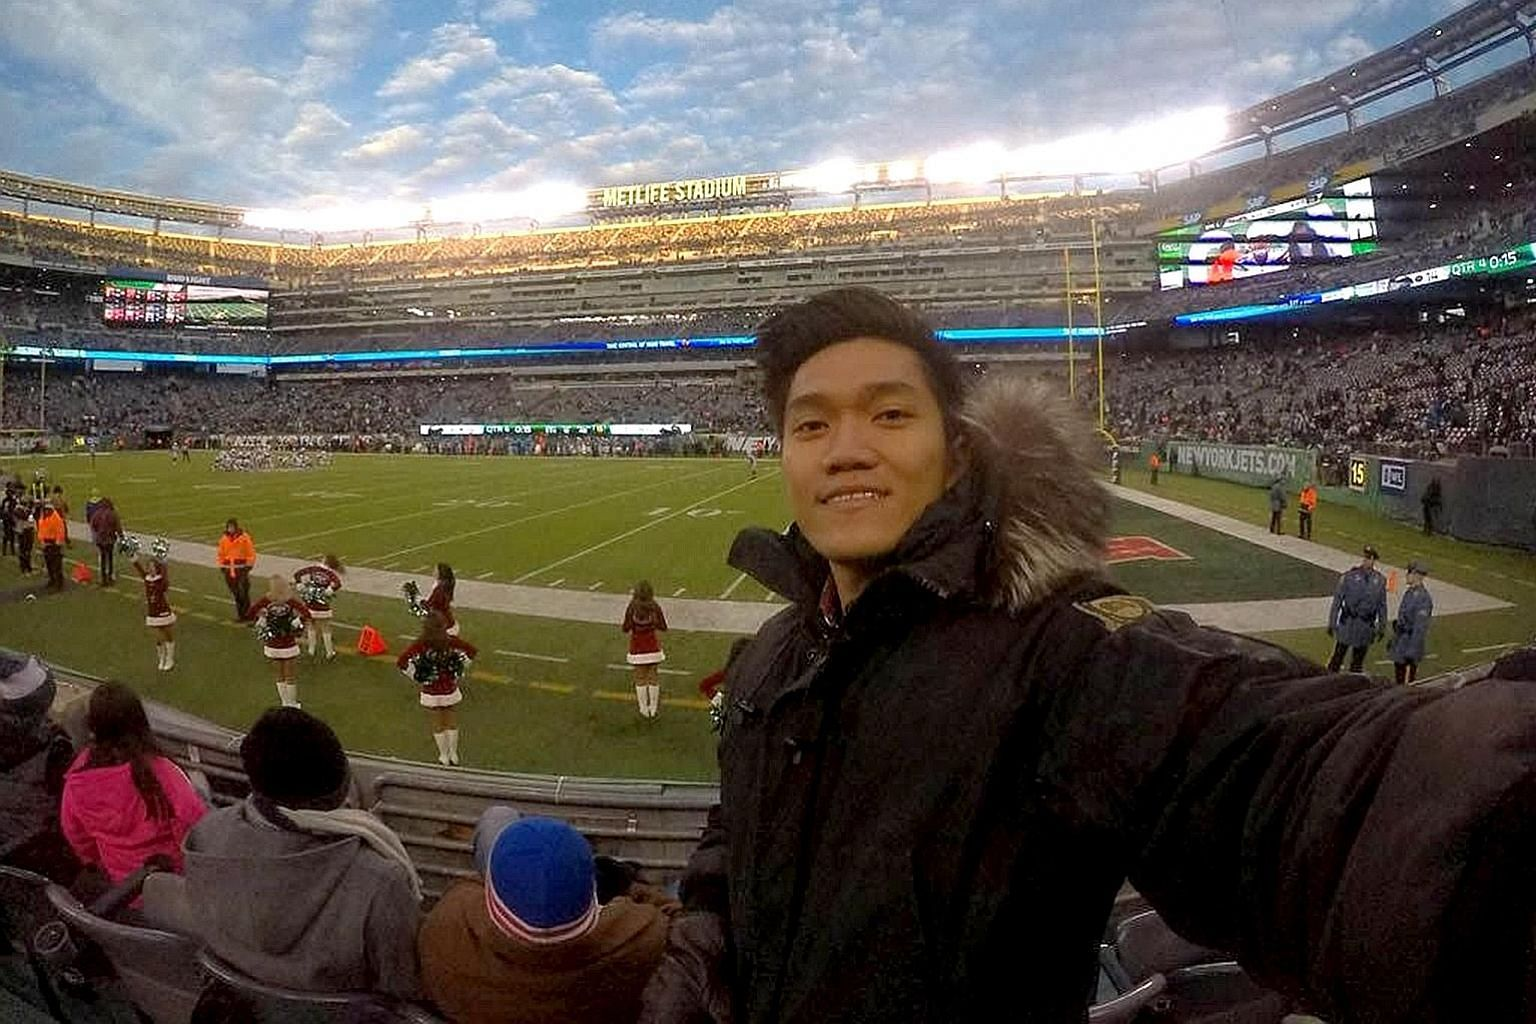 Mr Lim Zi Jian at an American football game in New Jersey during his US internship. He has been interning since August last year at a vertical farm start-up, which hopes to revolutionise agriculture methods.